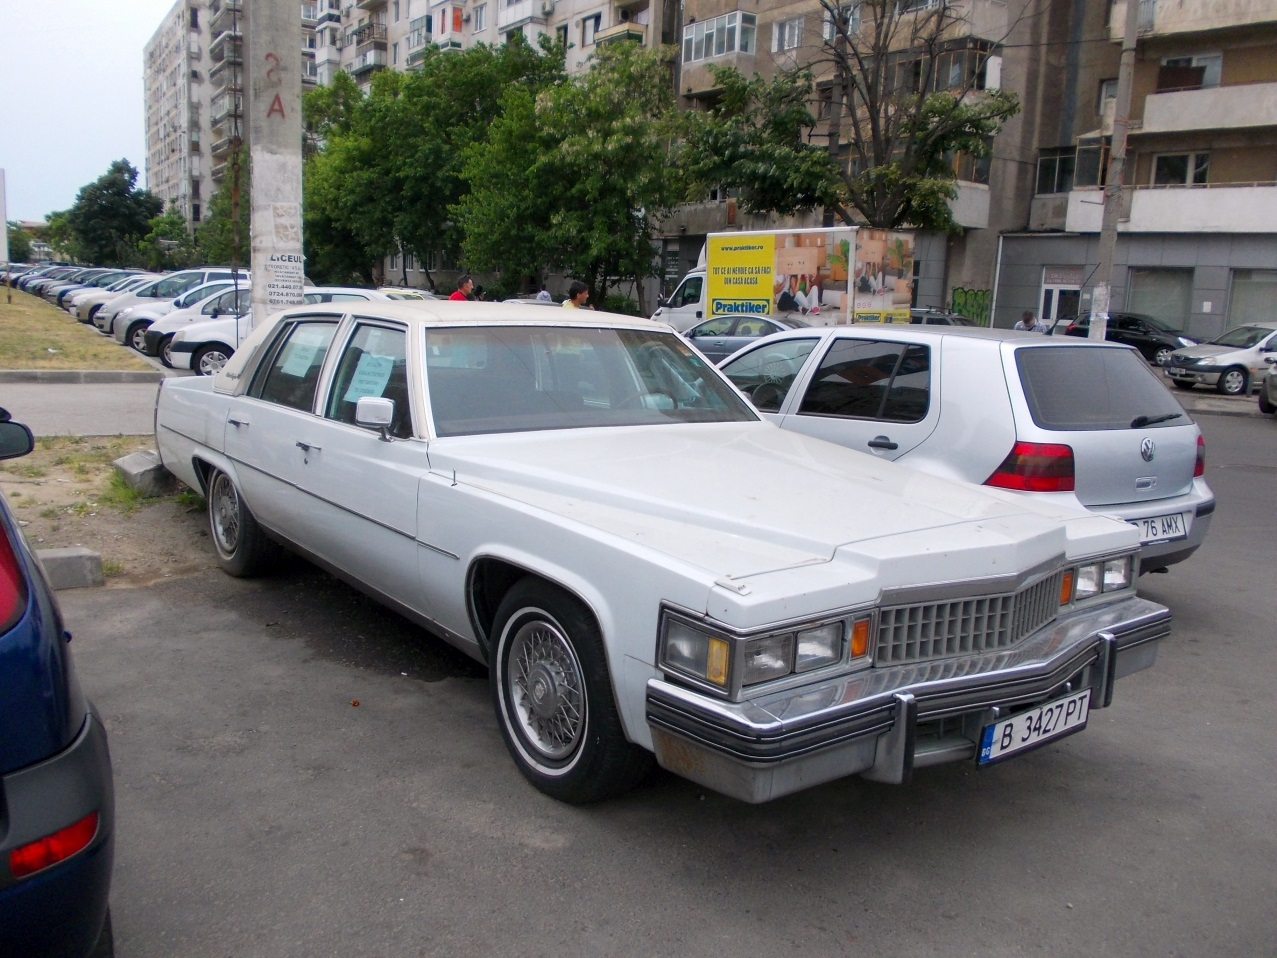 2015 cadillac fleetwood related keywords suggestions 2015 cadillac. Cars Review. Best American Auto & Cars Review